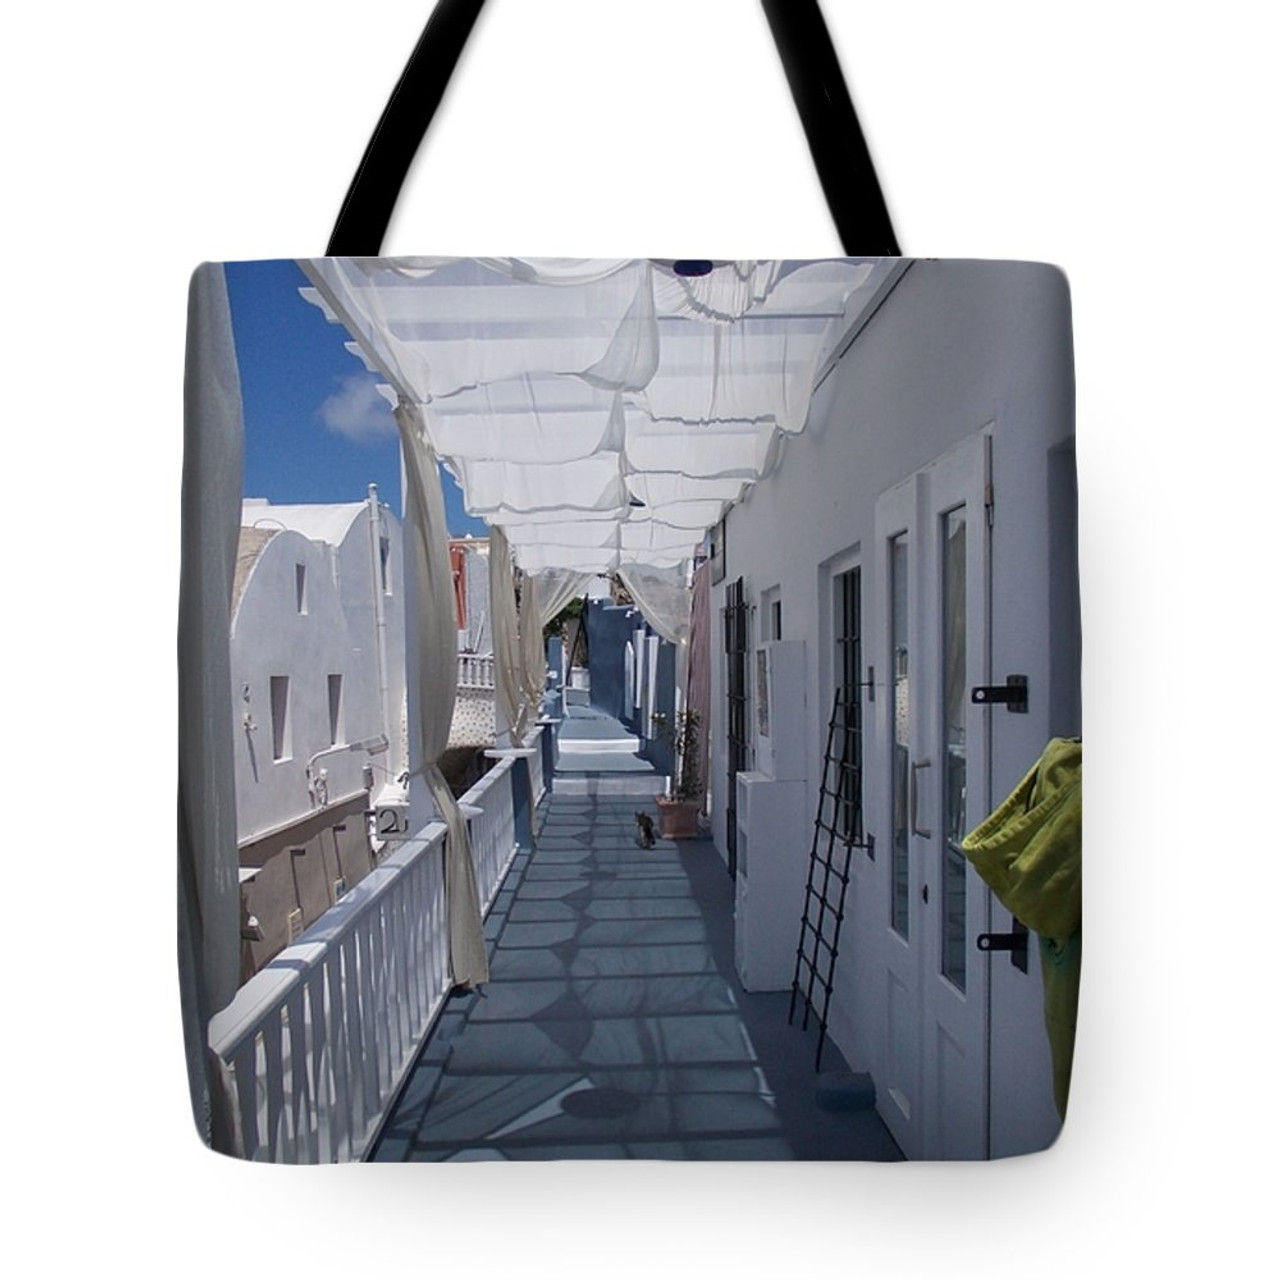 Santorini Tote bag- purchase here.